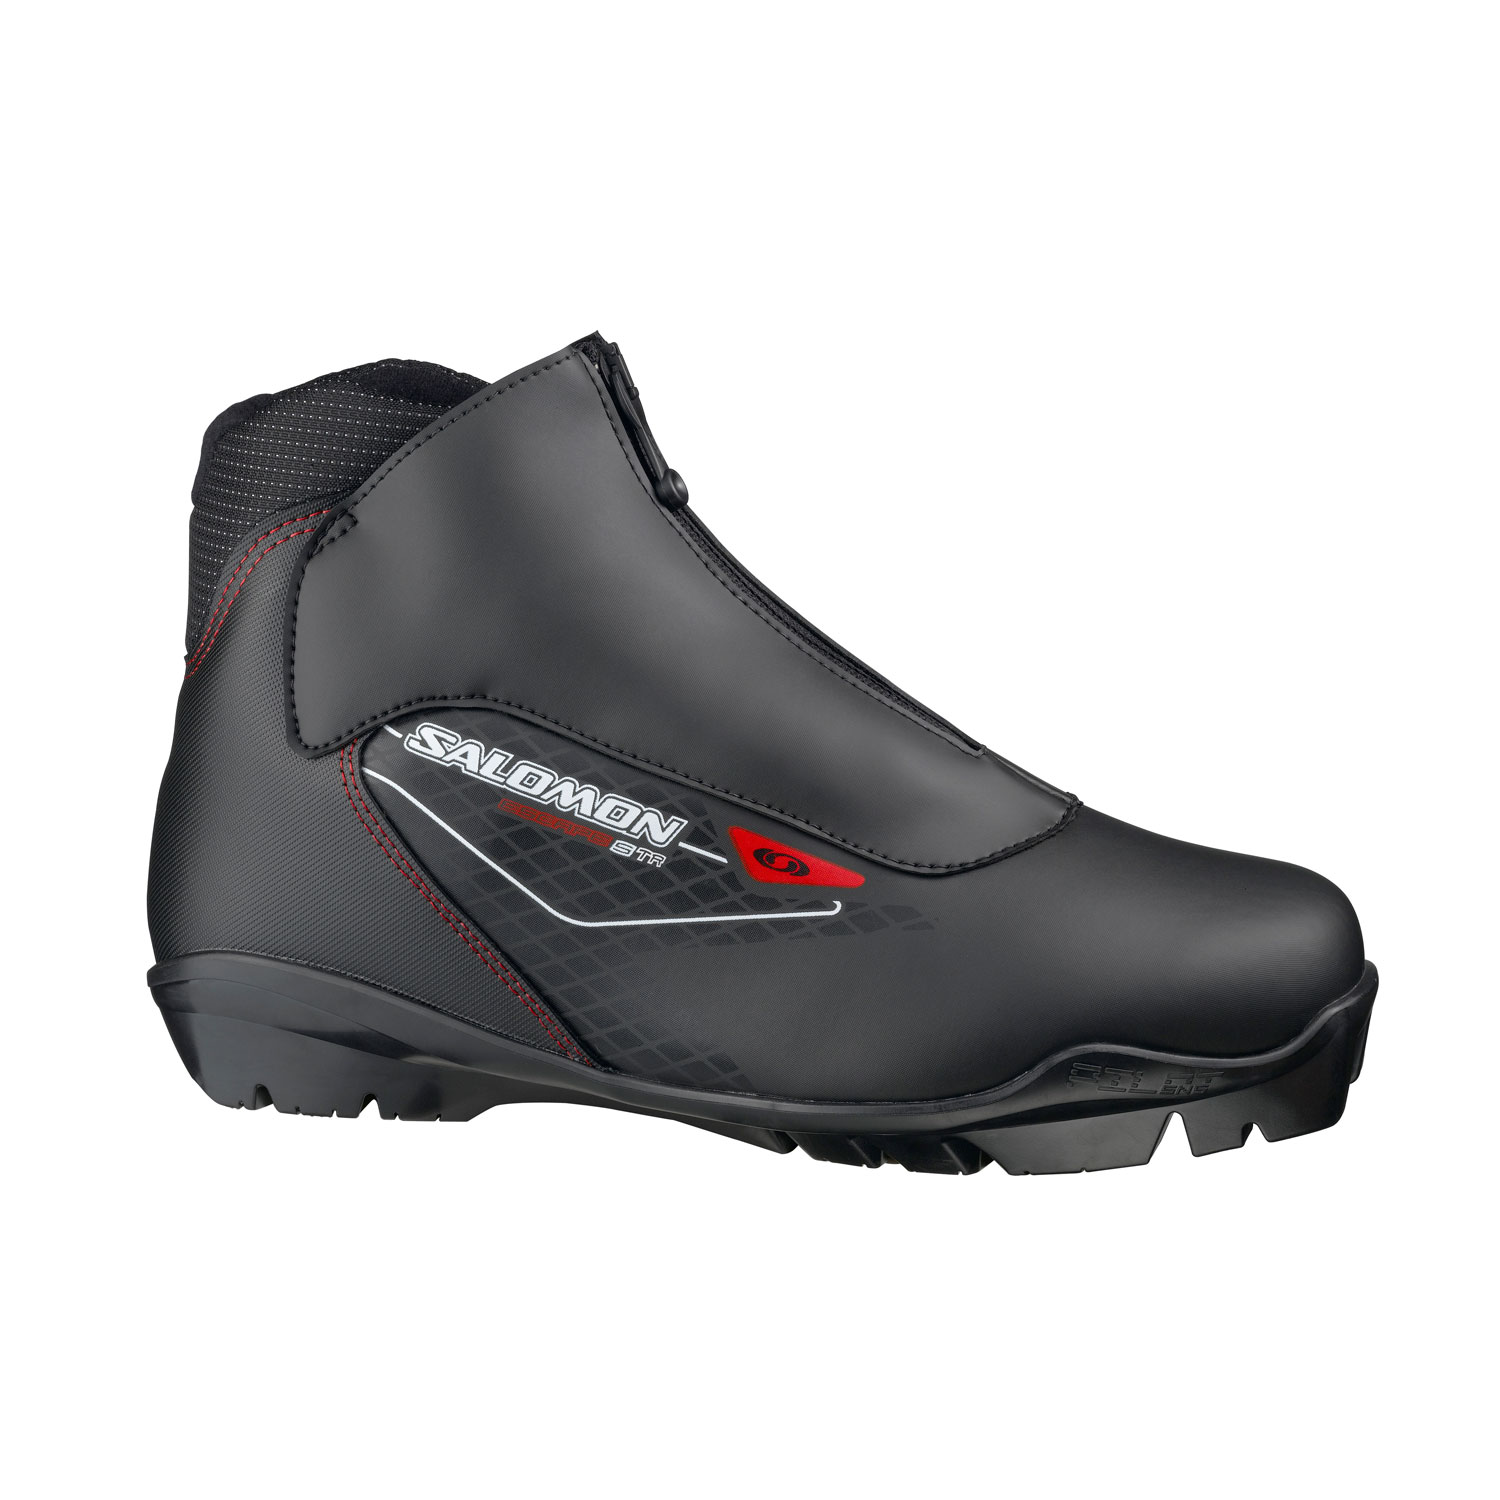 Ski Updated touring boot delivering Salomon fit and comfort at a great price.Key Features of the Salomon Escape 5 TR Cross Country Ski Boots: Protection Lace cover with central zip Heel support Internal thermo formed heel counter Last Salomon Touring fit SNS PROFIL Touring Sport outsole Weight: 940g/pair (8) - $68.95